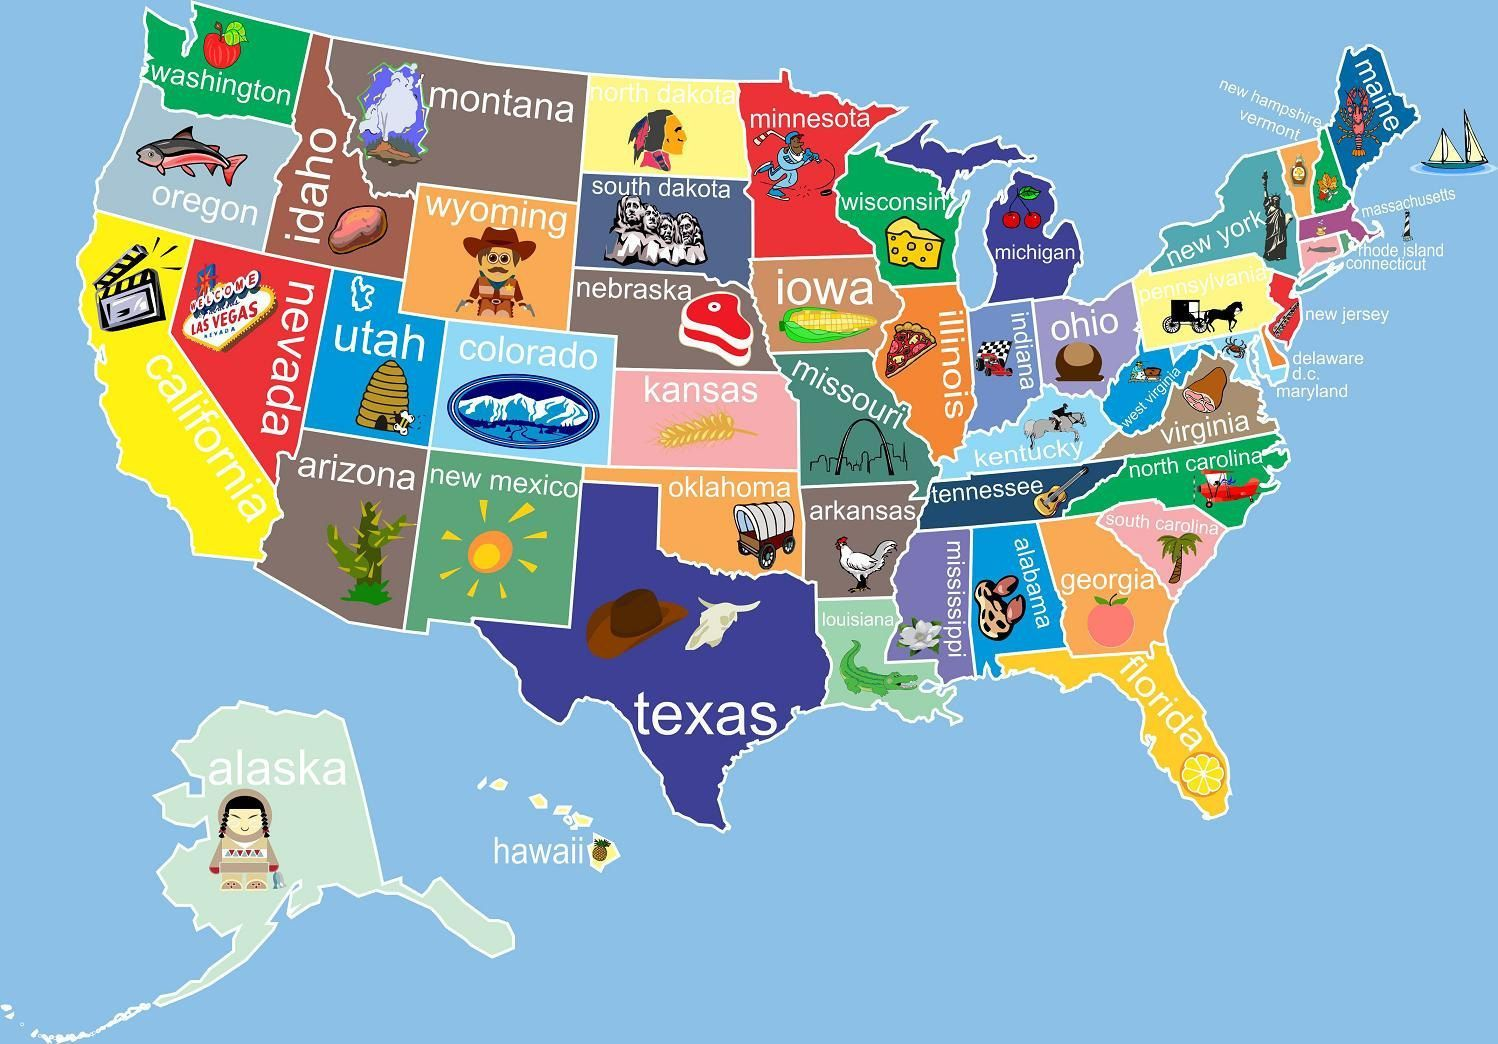 Kids United States Map - giving the states a little personality!